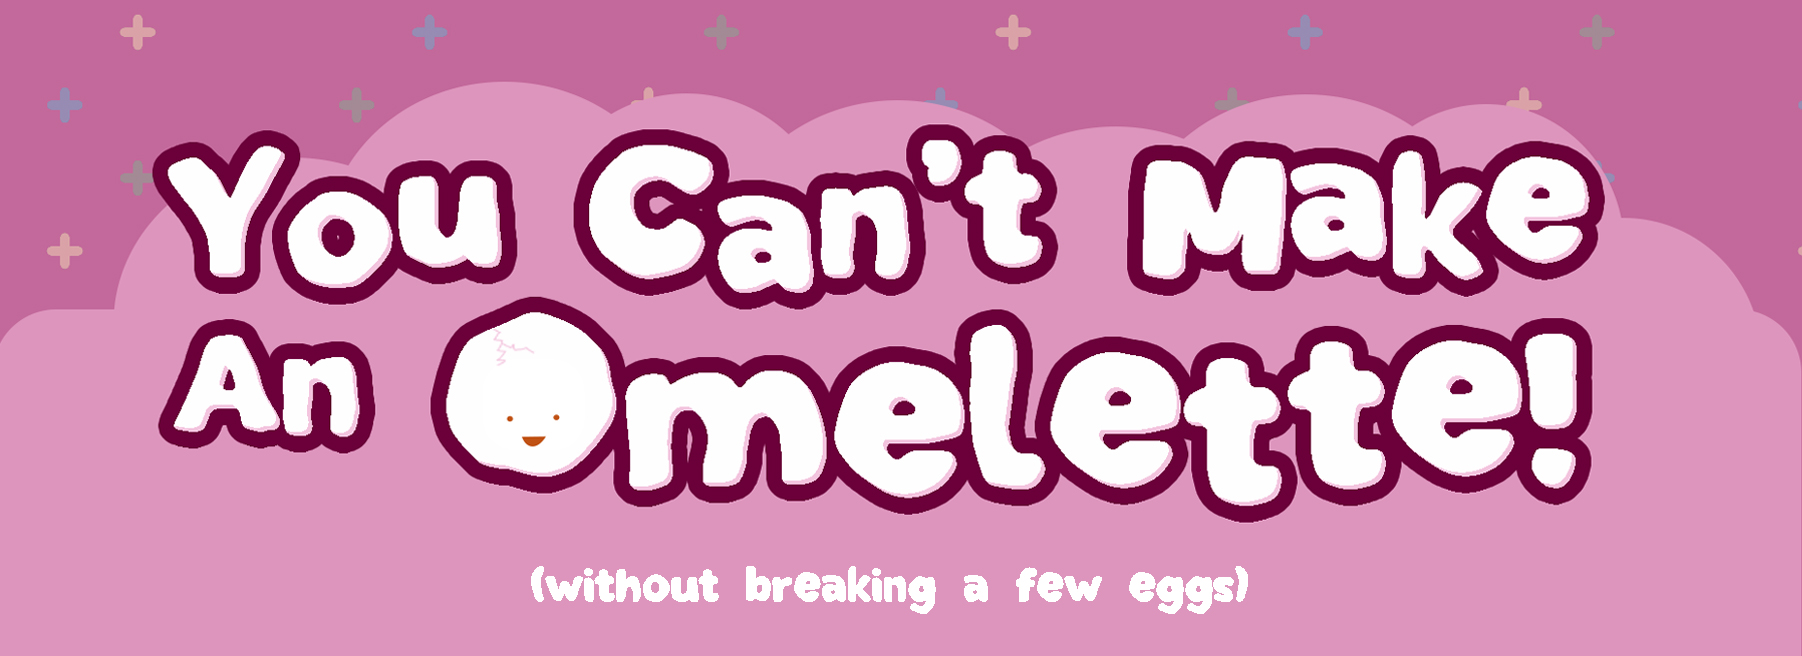 You Can't Make An Omelette